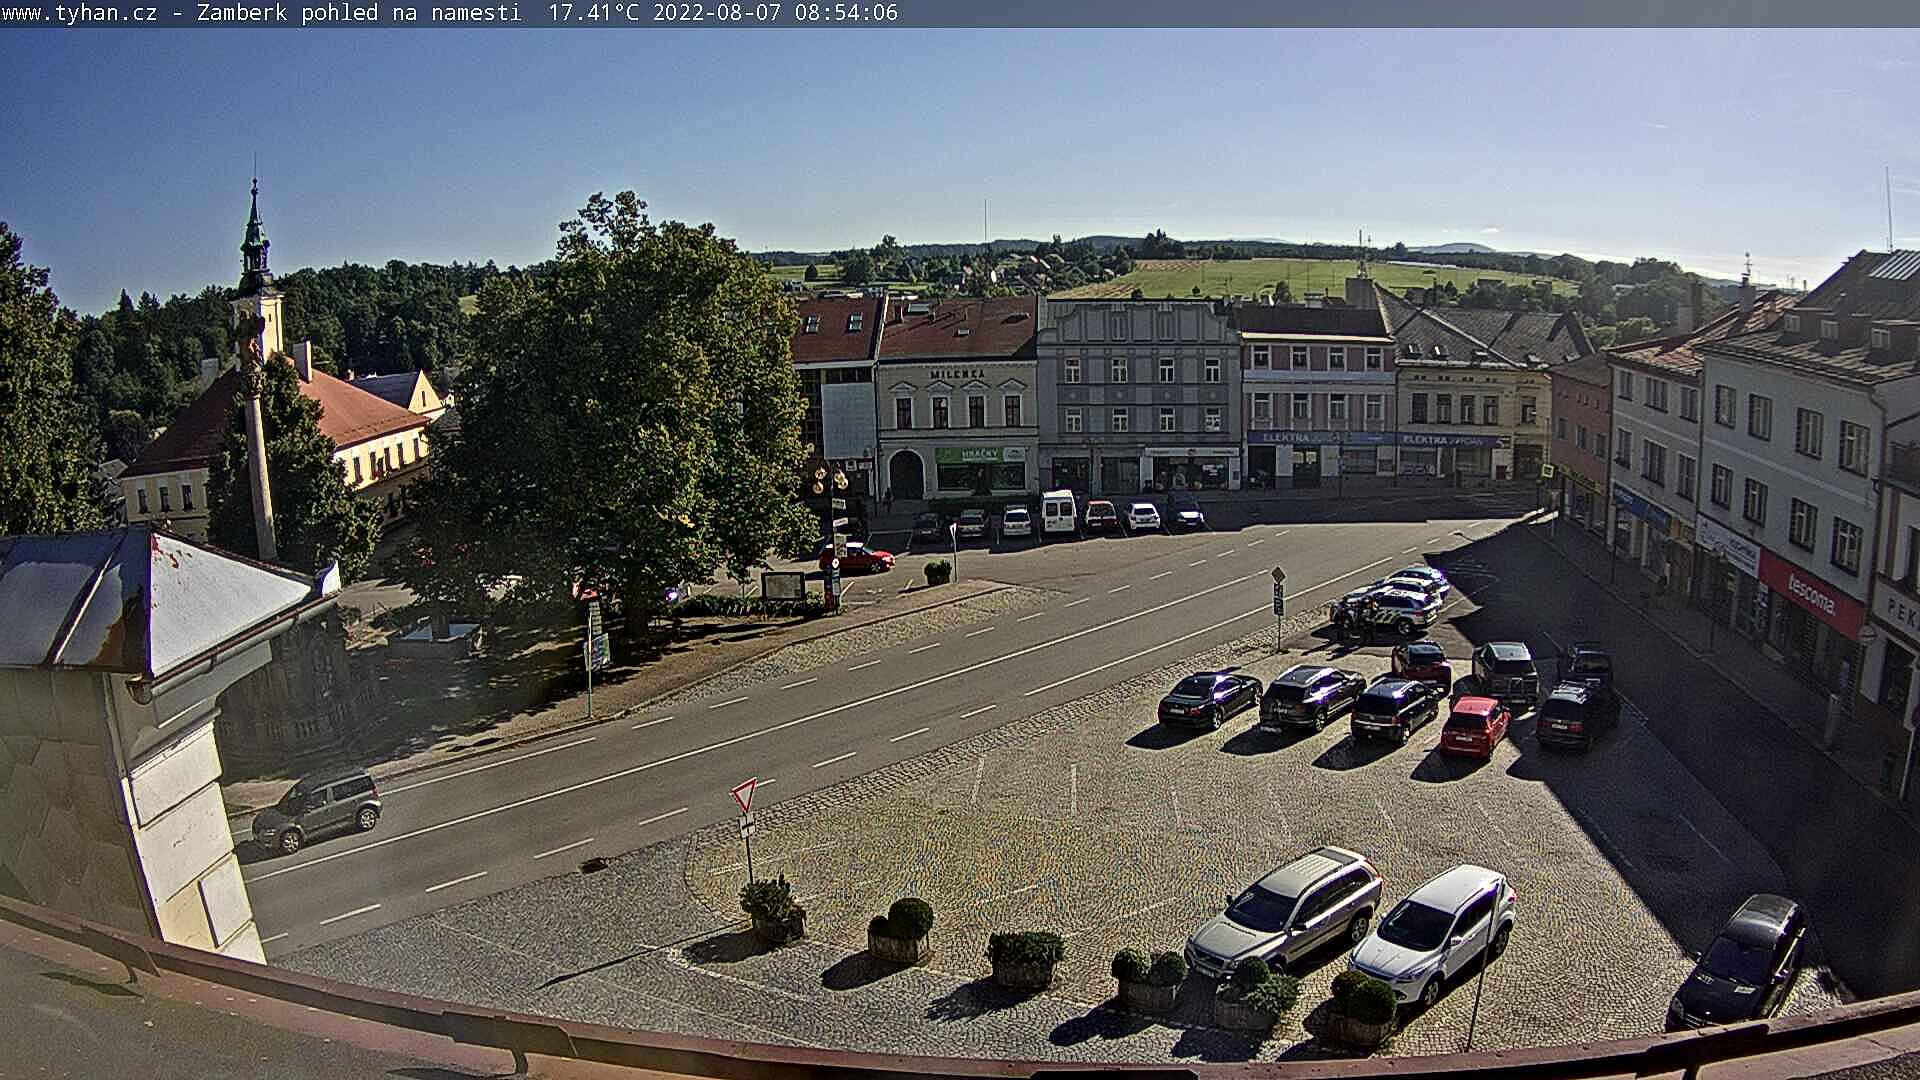 Webcam - Žamberk